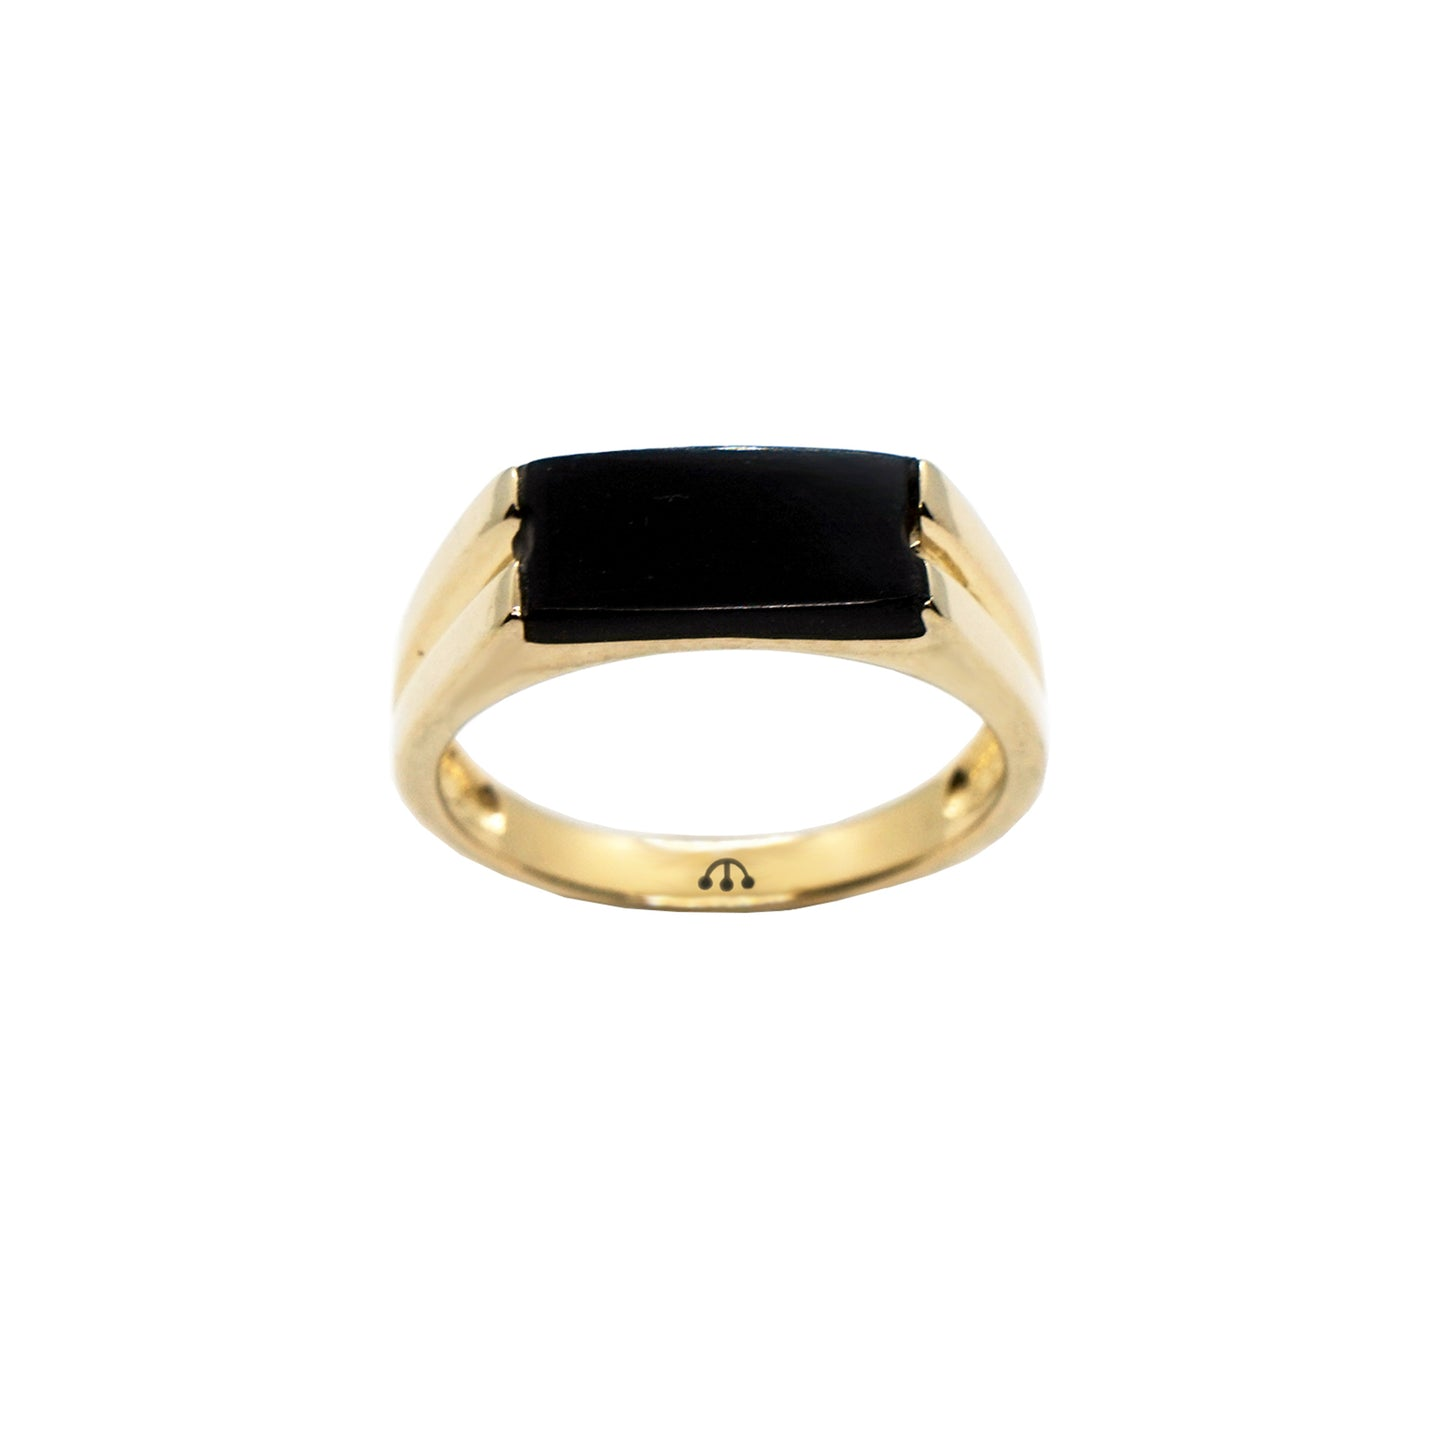 PAWNSHOP GOLD PLATED STERLING SILVER ONYX SIGNET RING